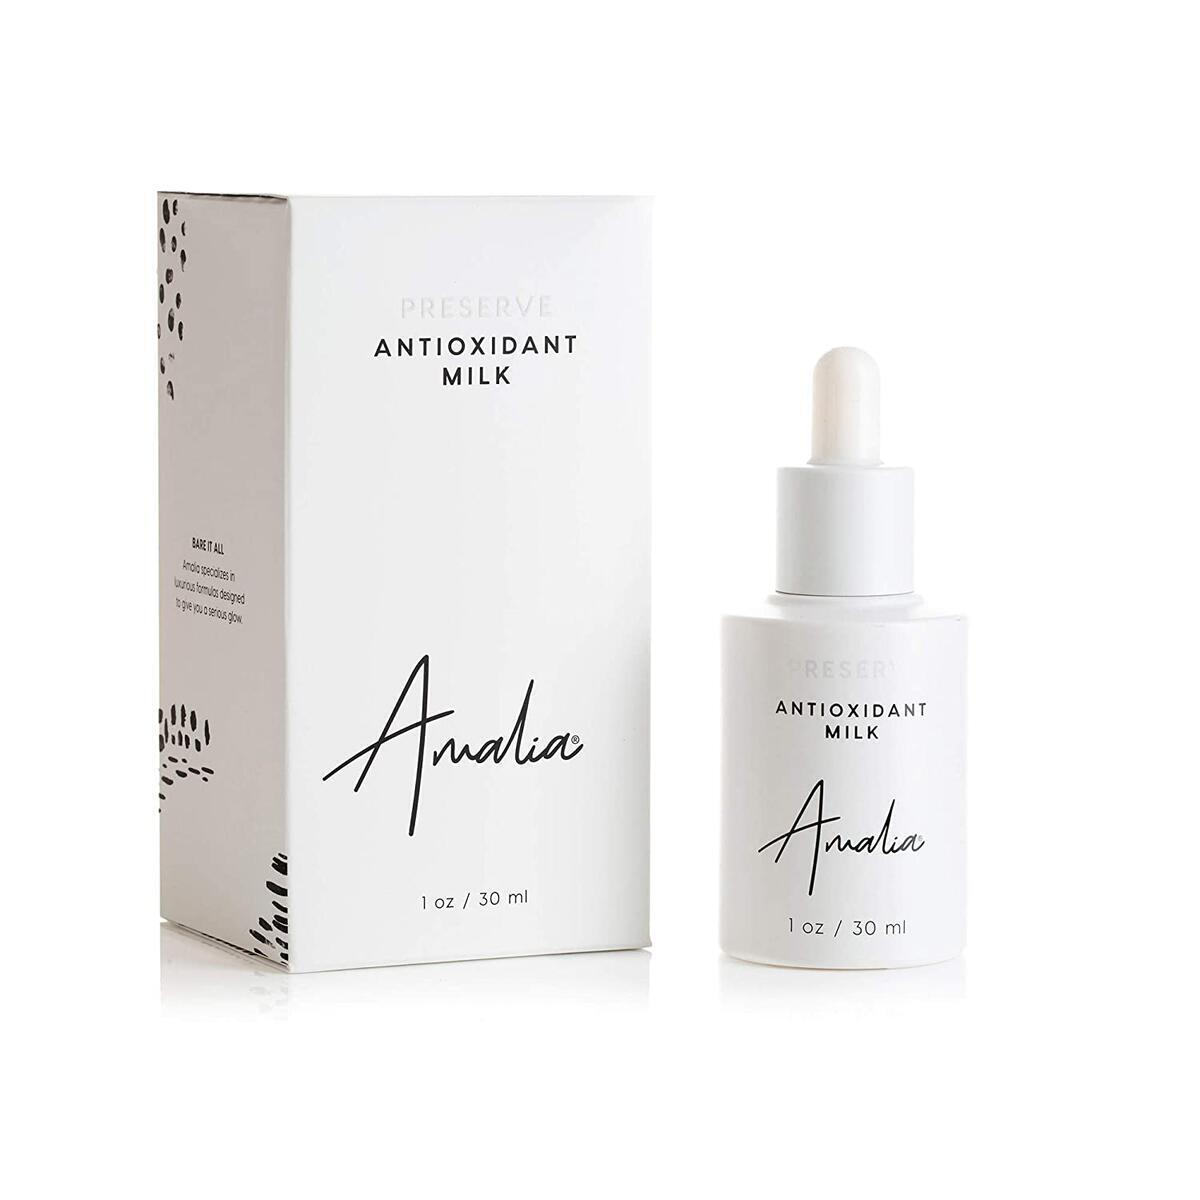 Amalia Antioxidant Milk Vitamin C Serum - Brightening Formula with Anti-Aging Niacinamide (B3) & Antioxidant Packed Phloretin for All Skin Types